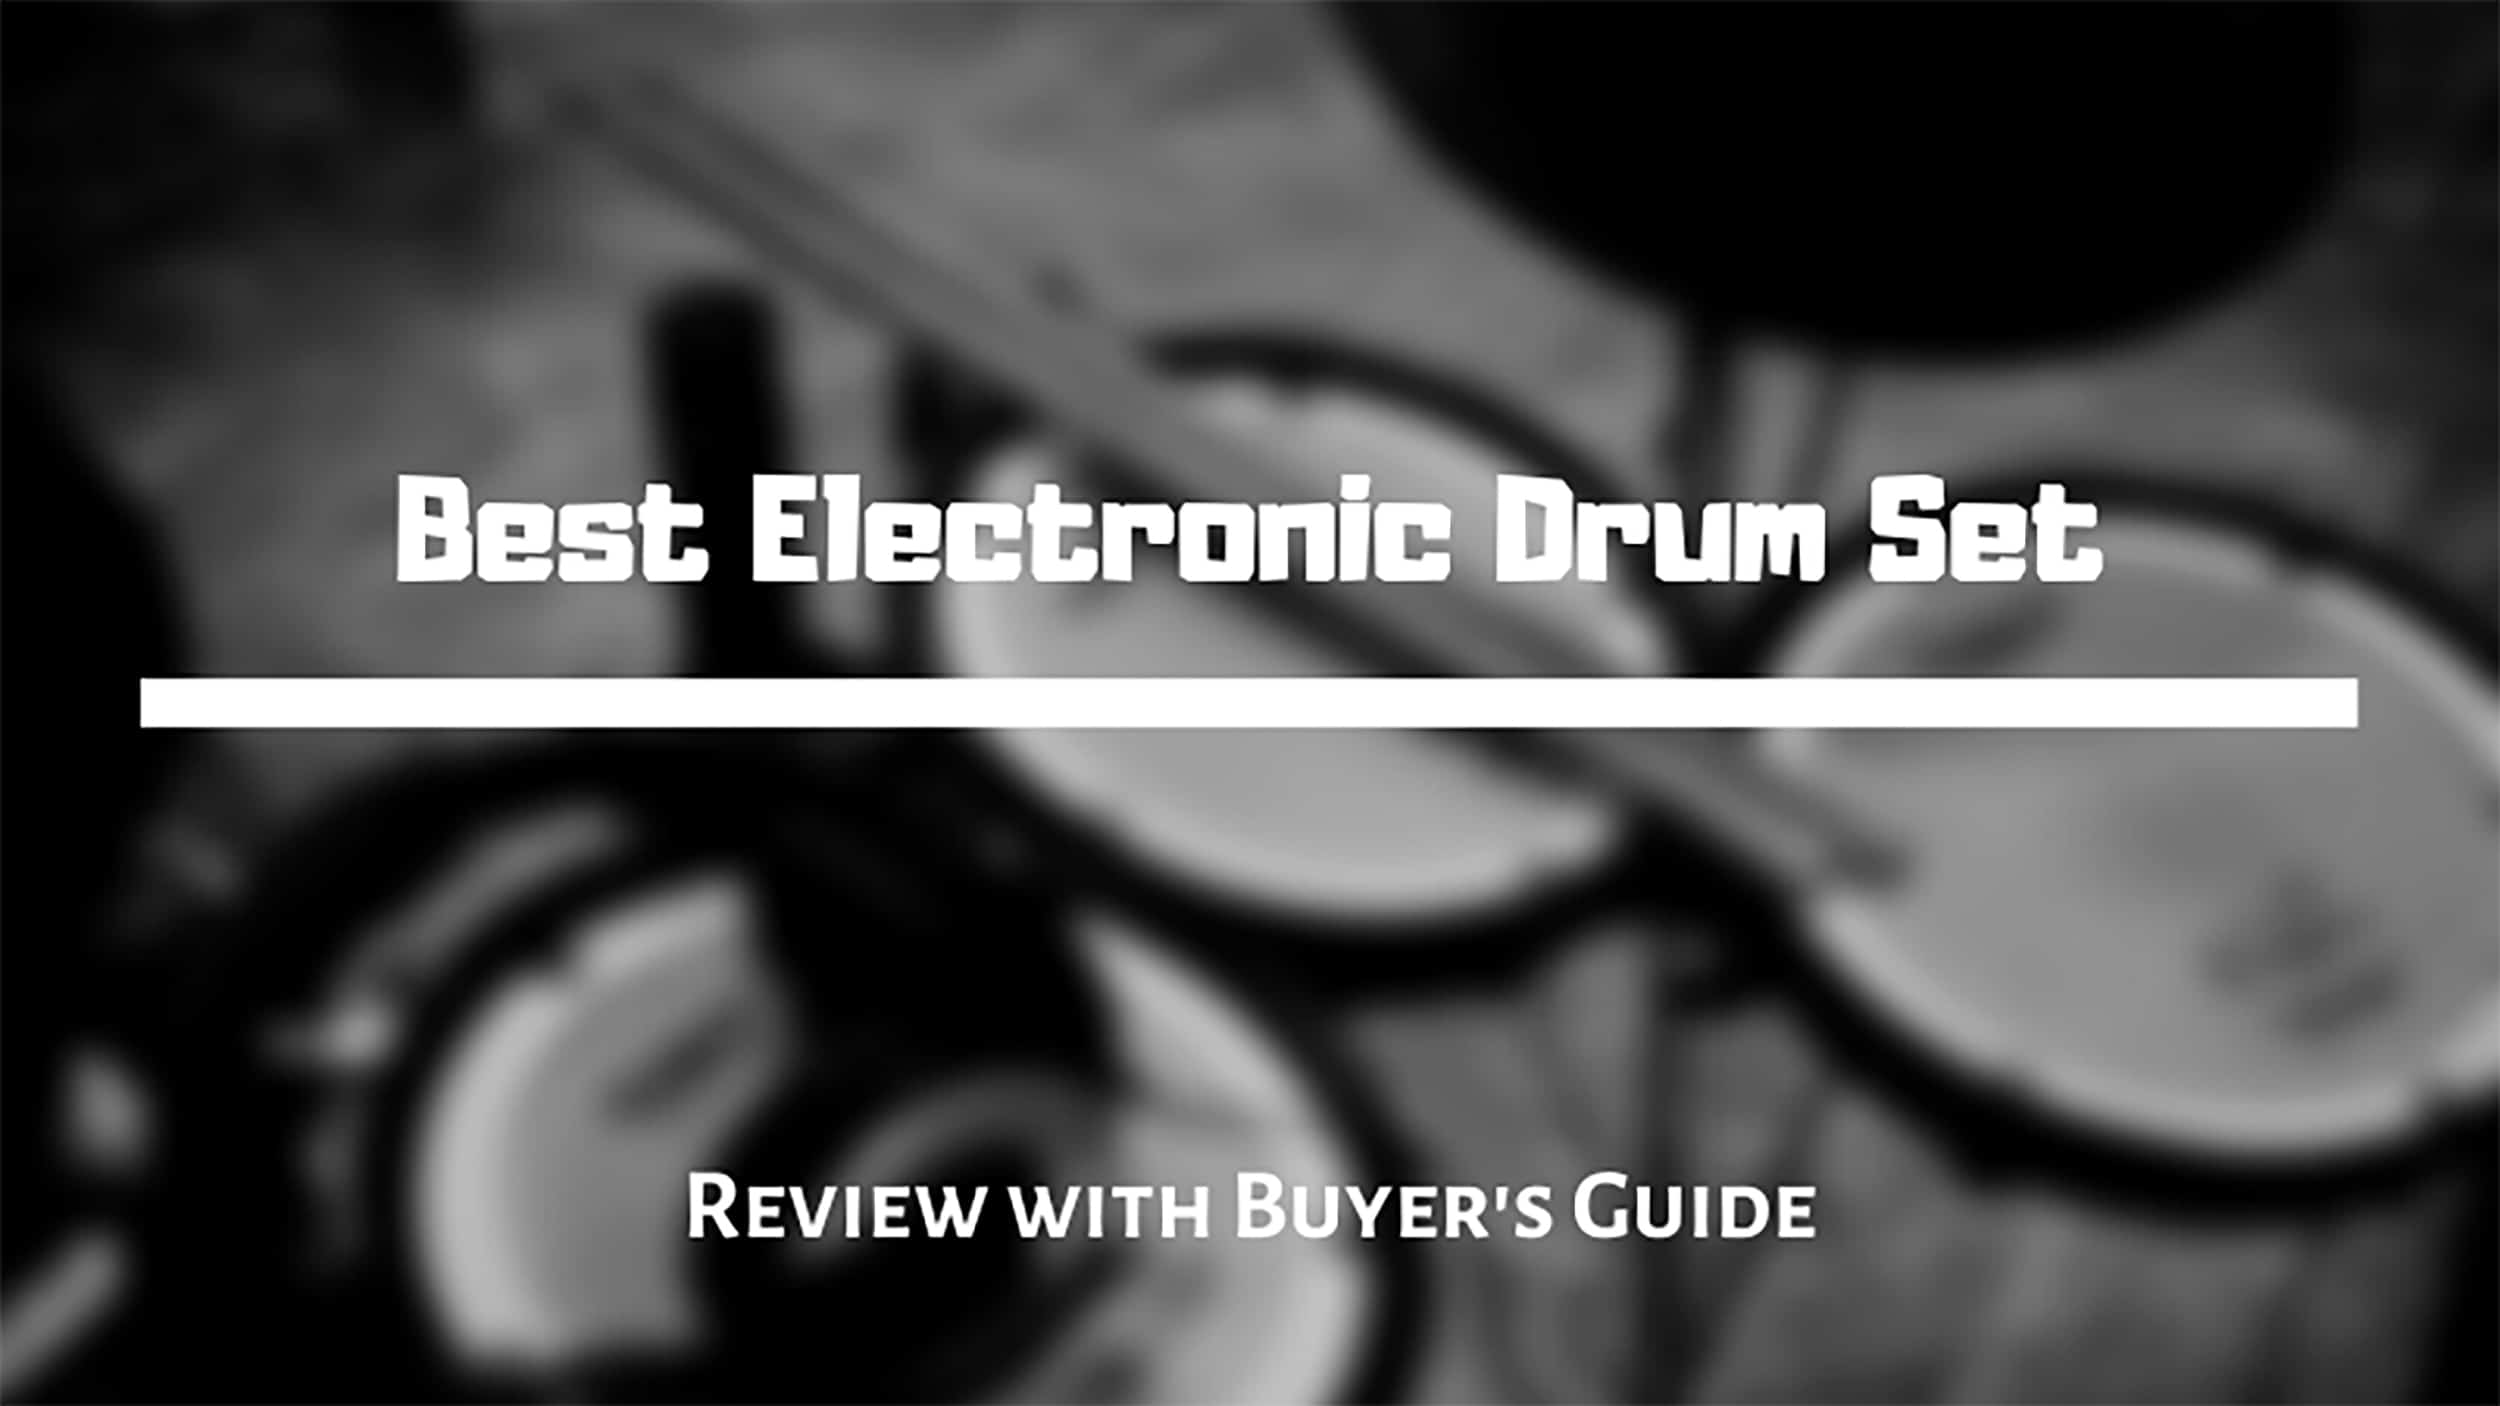 Best Electronic Drum Set Review for 2021 [Includes Buyer's Guide]